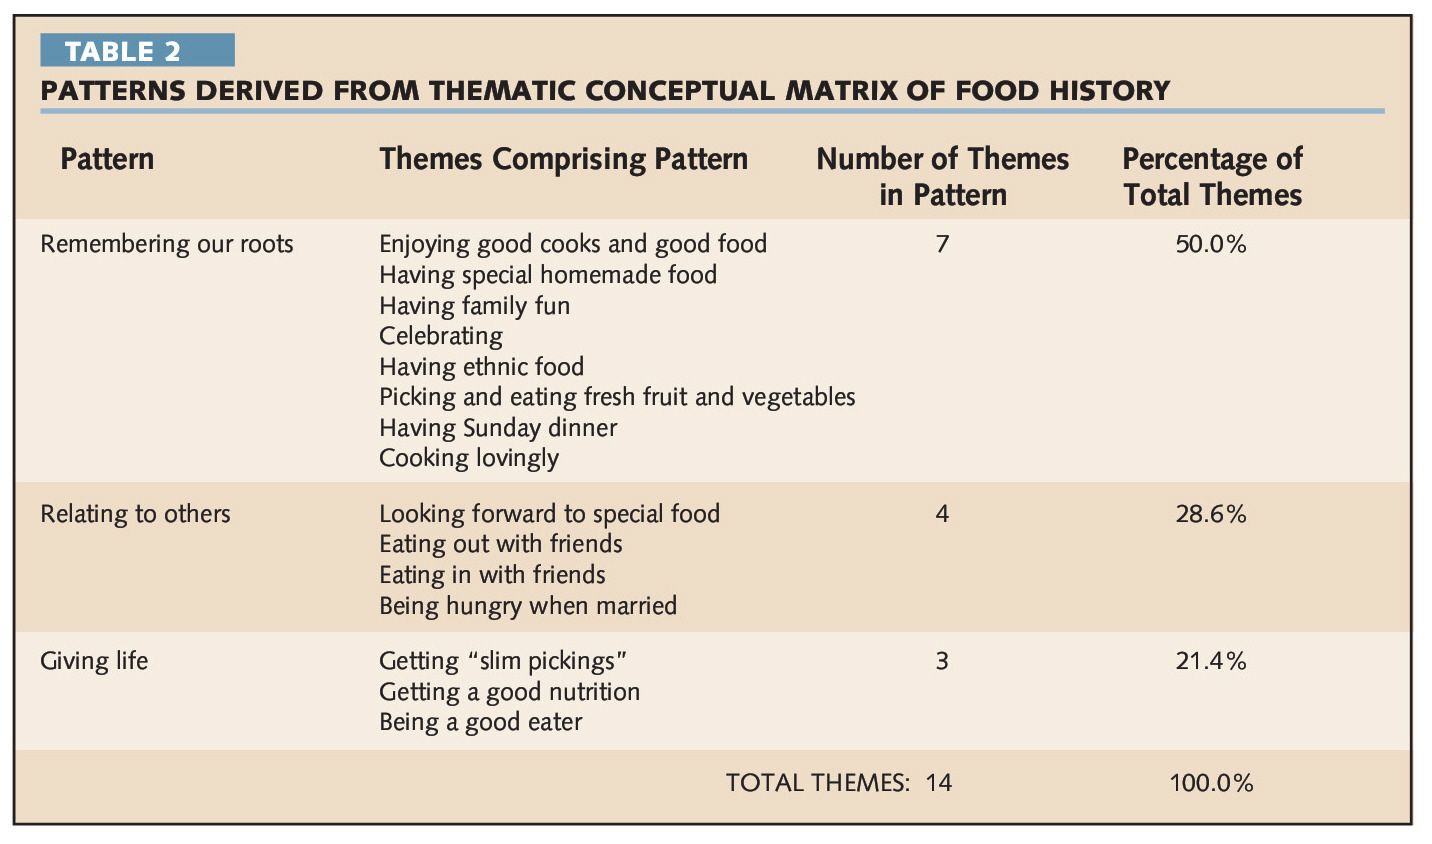 TABLE 2PATTERNS DERIVED FROM THEAAATIC CONCEPTUAL AAATRIX OF FOOD HISTORY